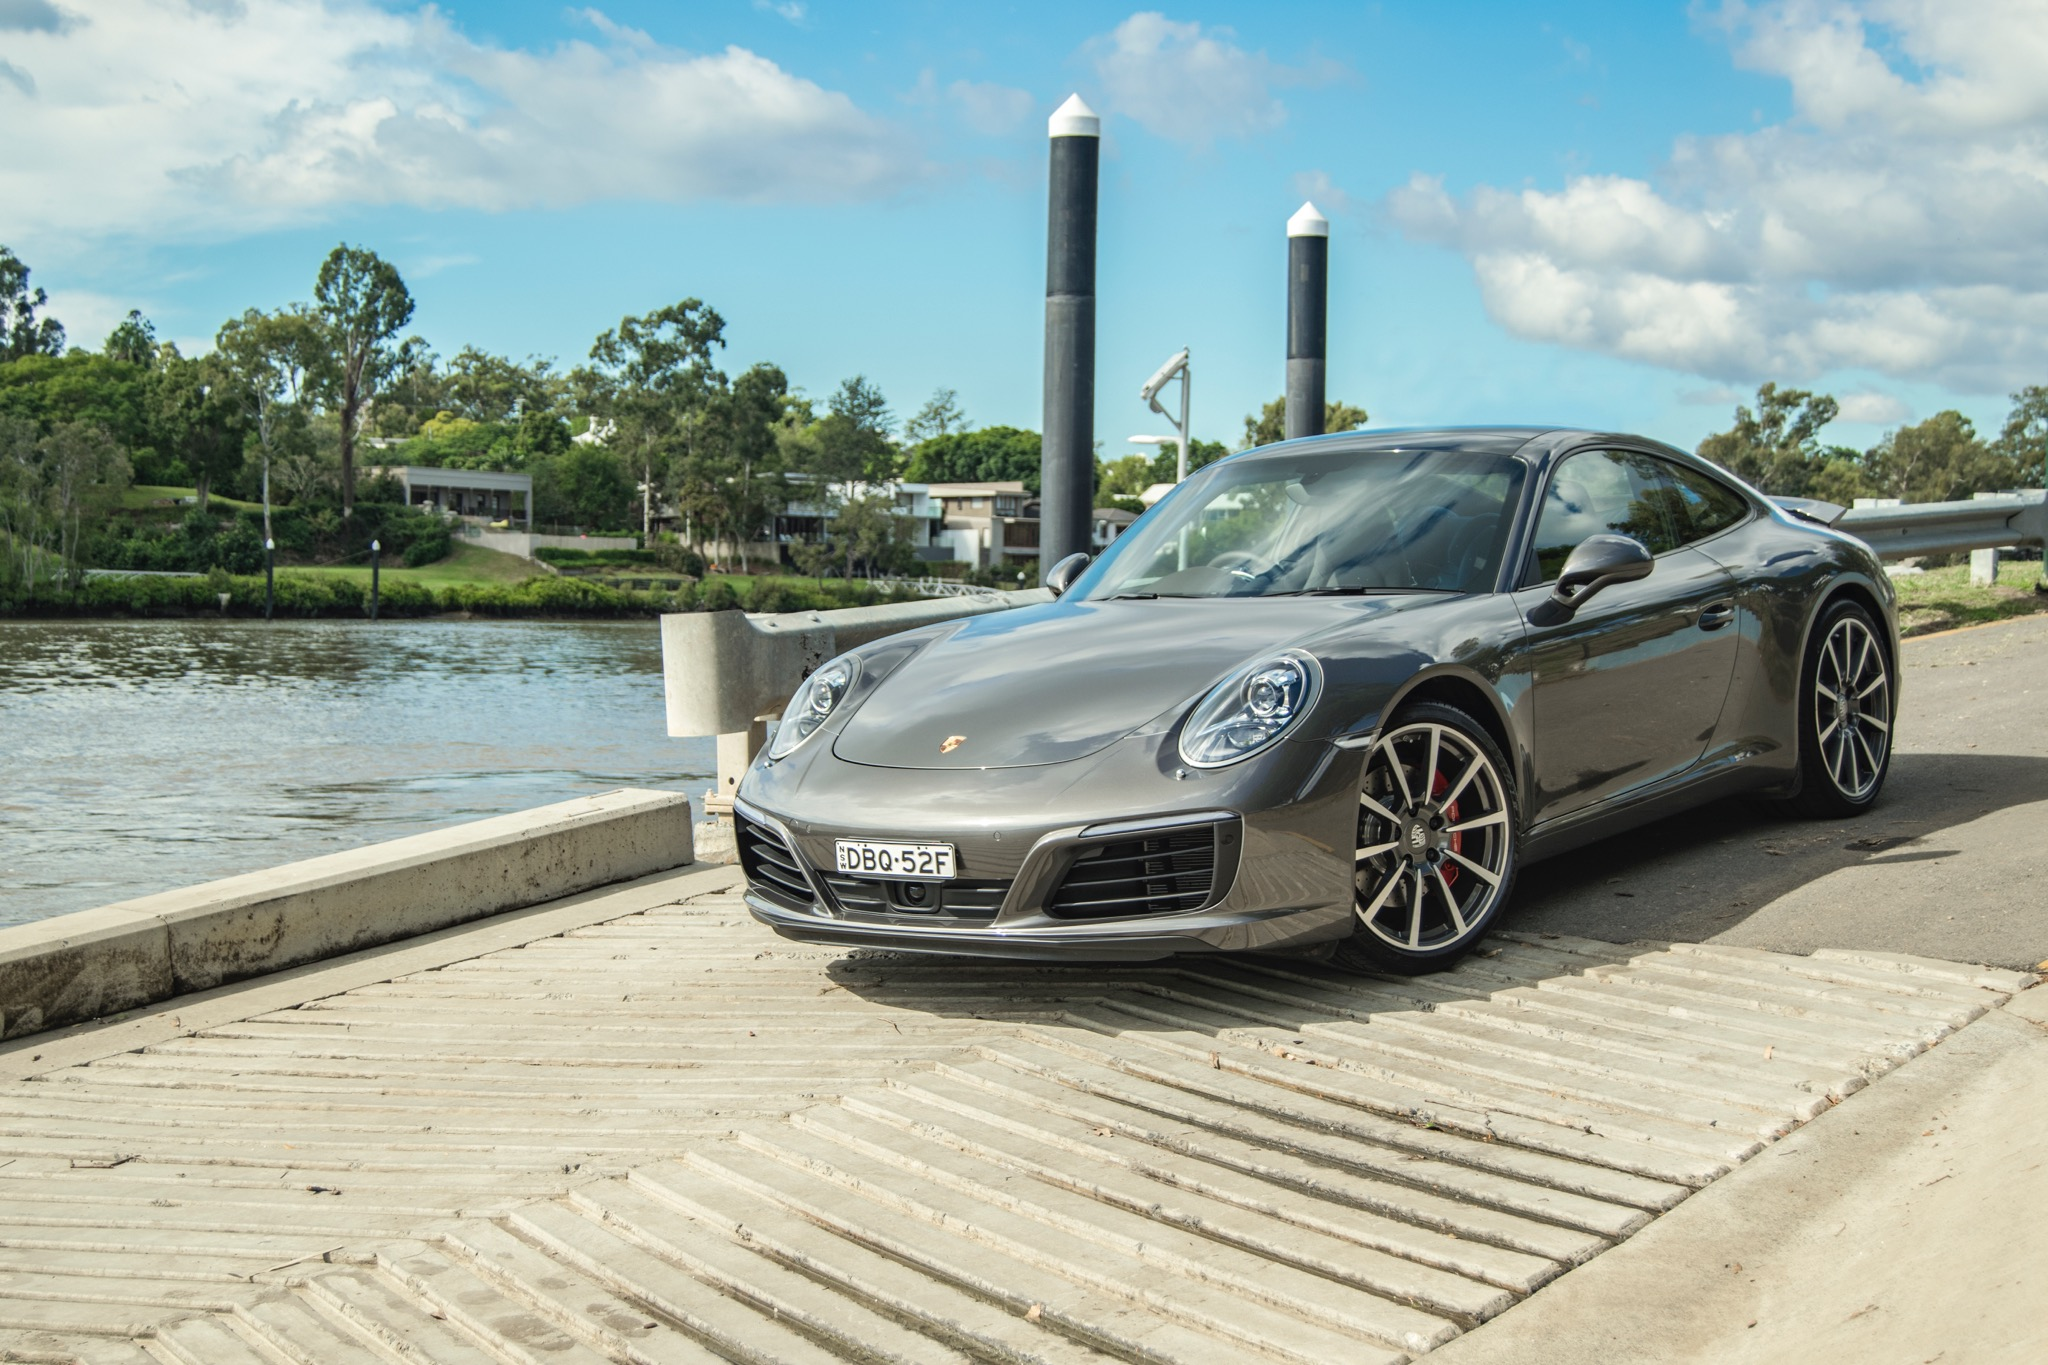 2016 Porsche 911 Carrera S Review - photos | CarAdvice